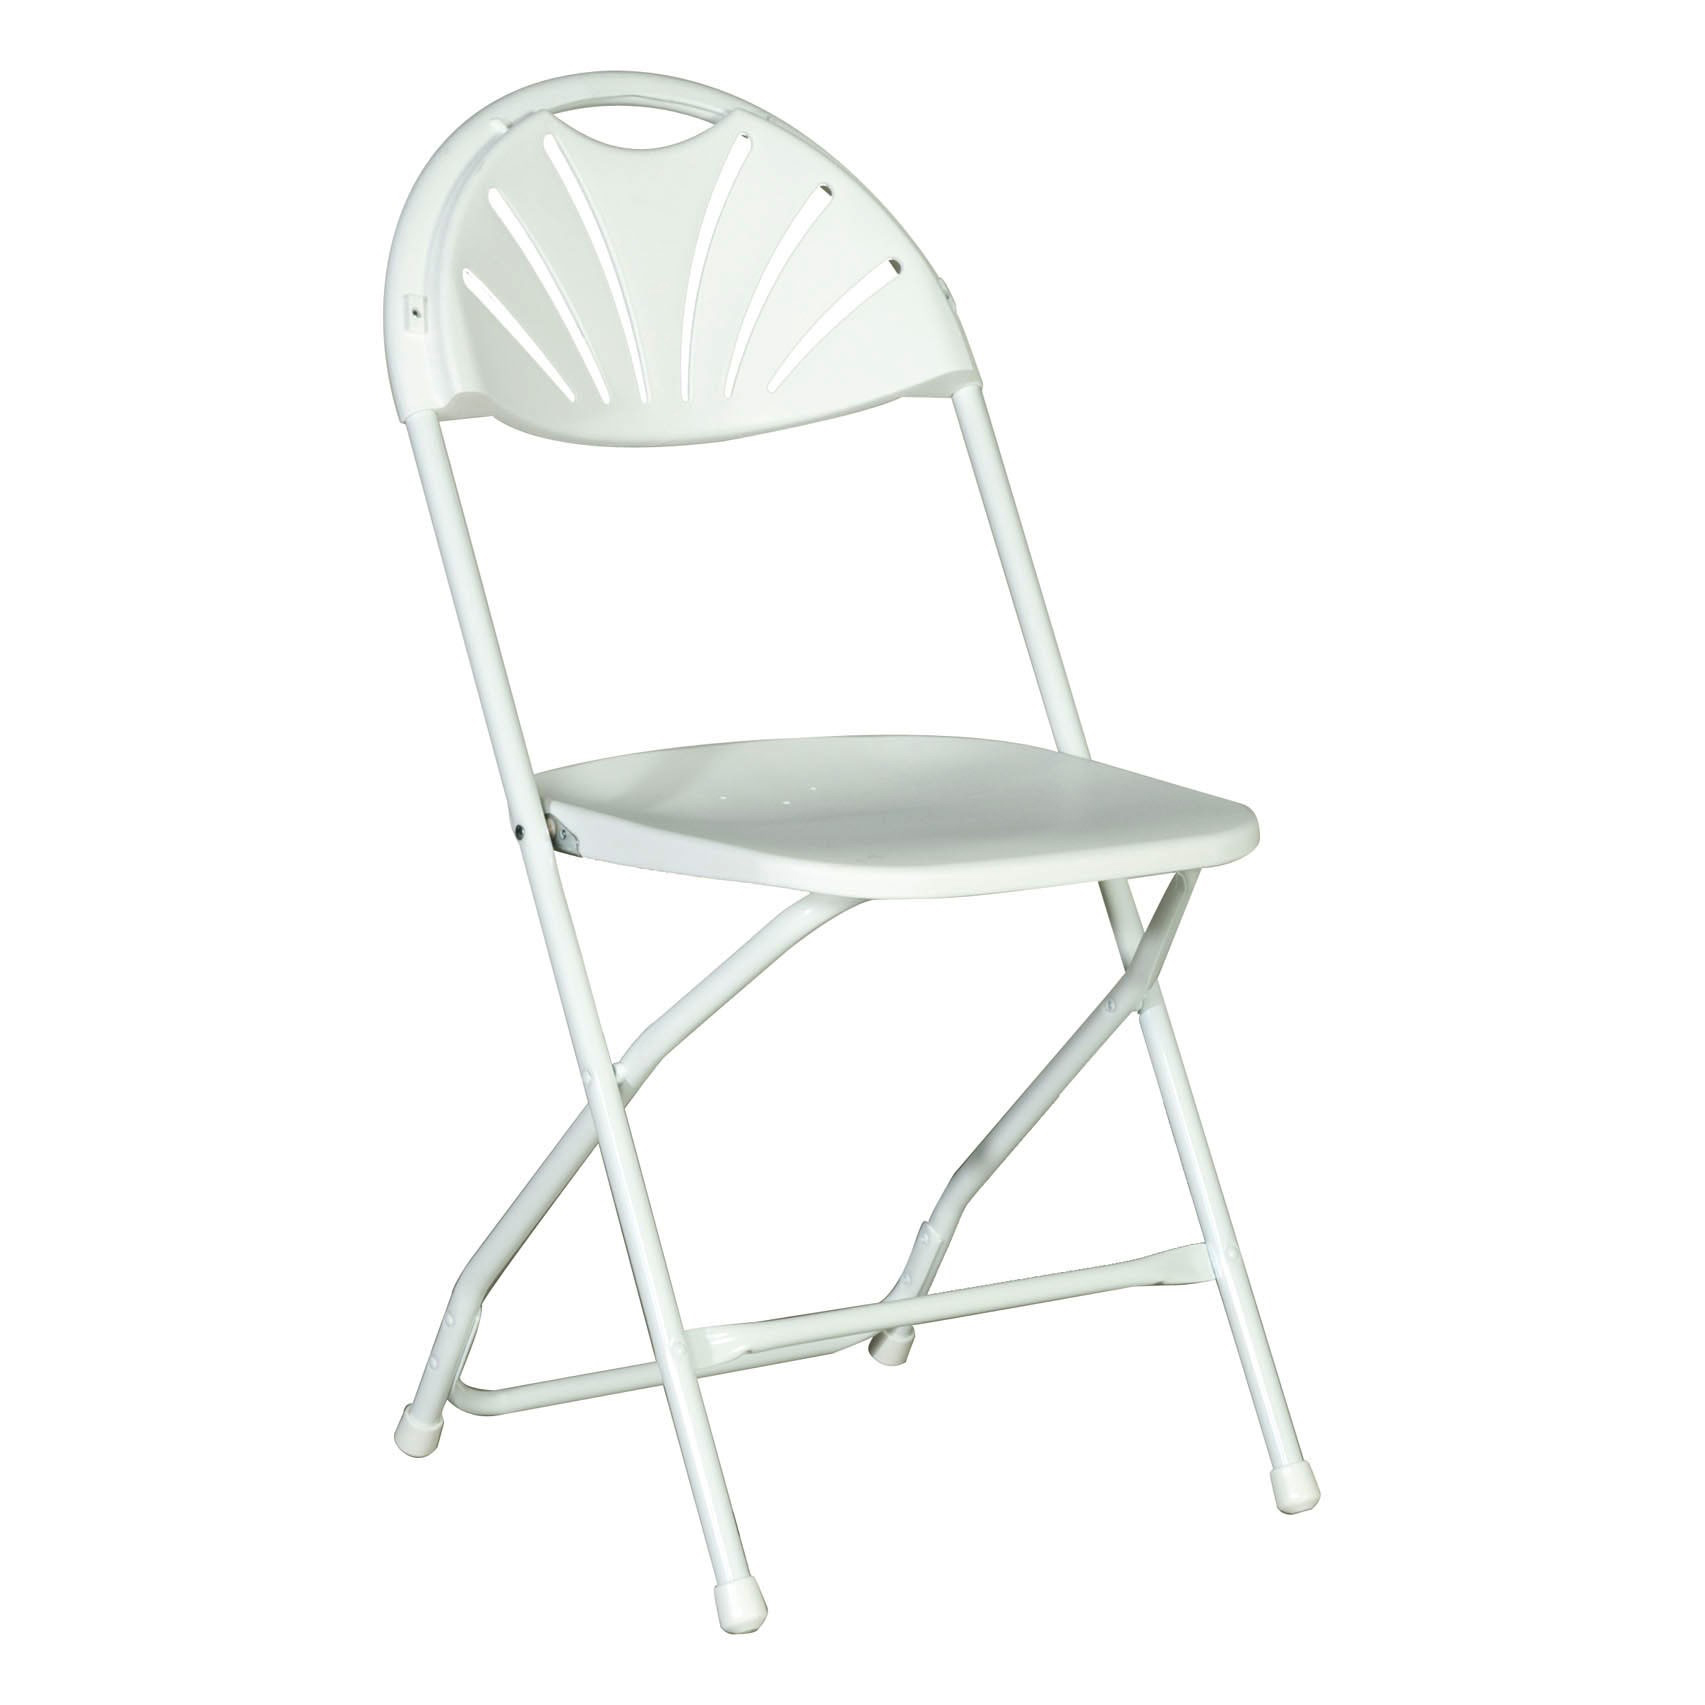 Cheap Folding Chairs Fun And Game Party Your Party And Event Source